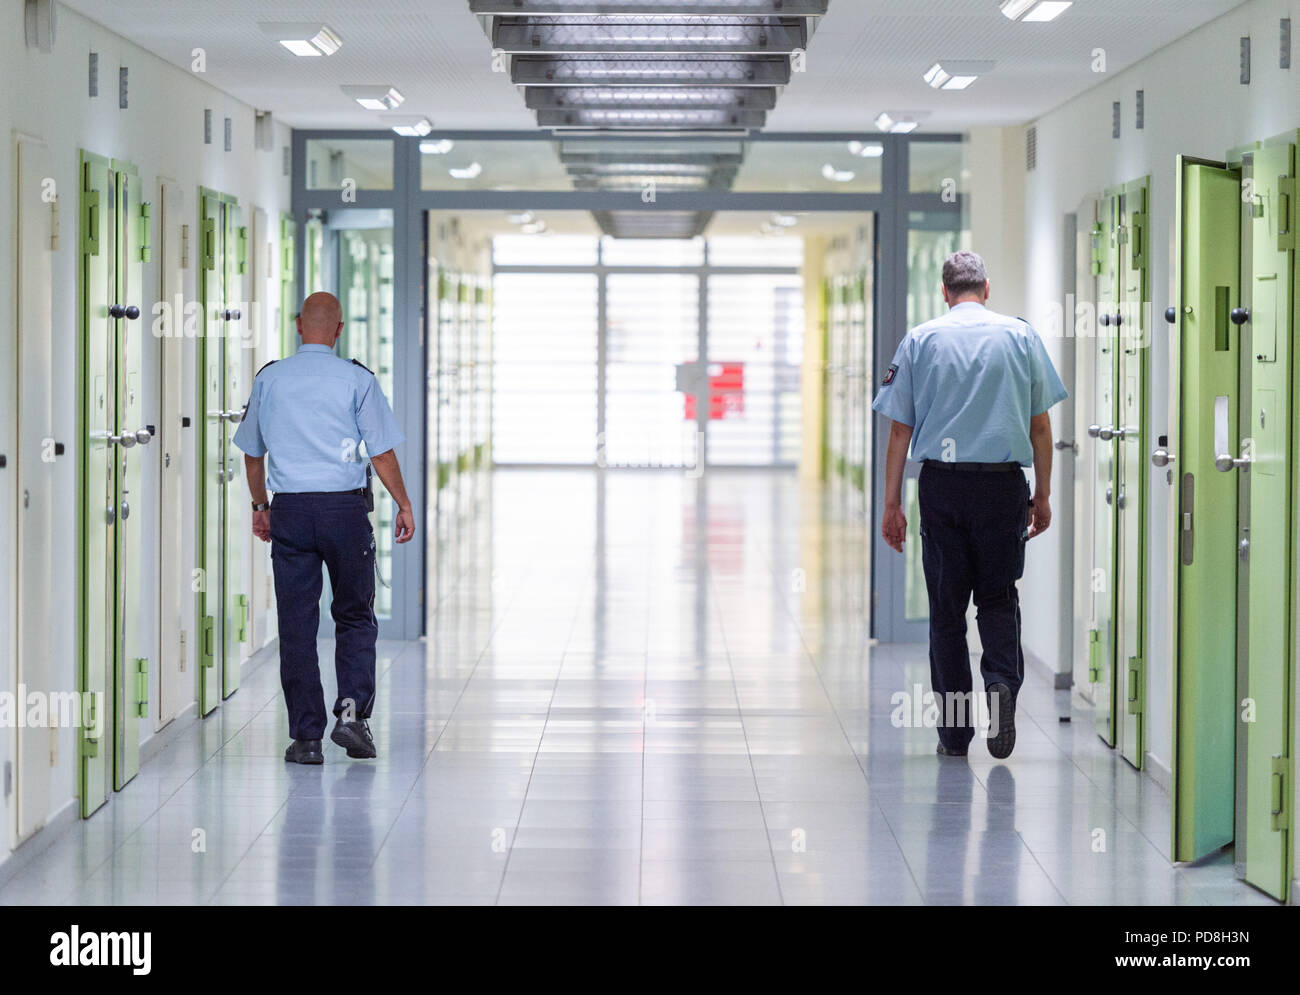 Correctional Officers Stock Photos & Correctional Officers